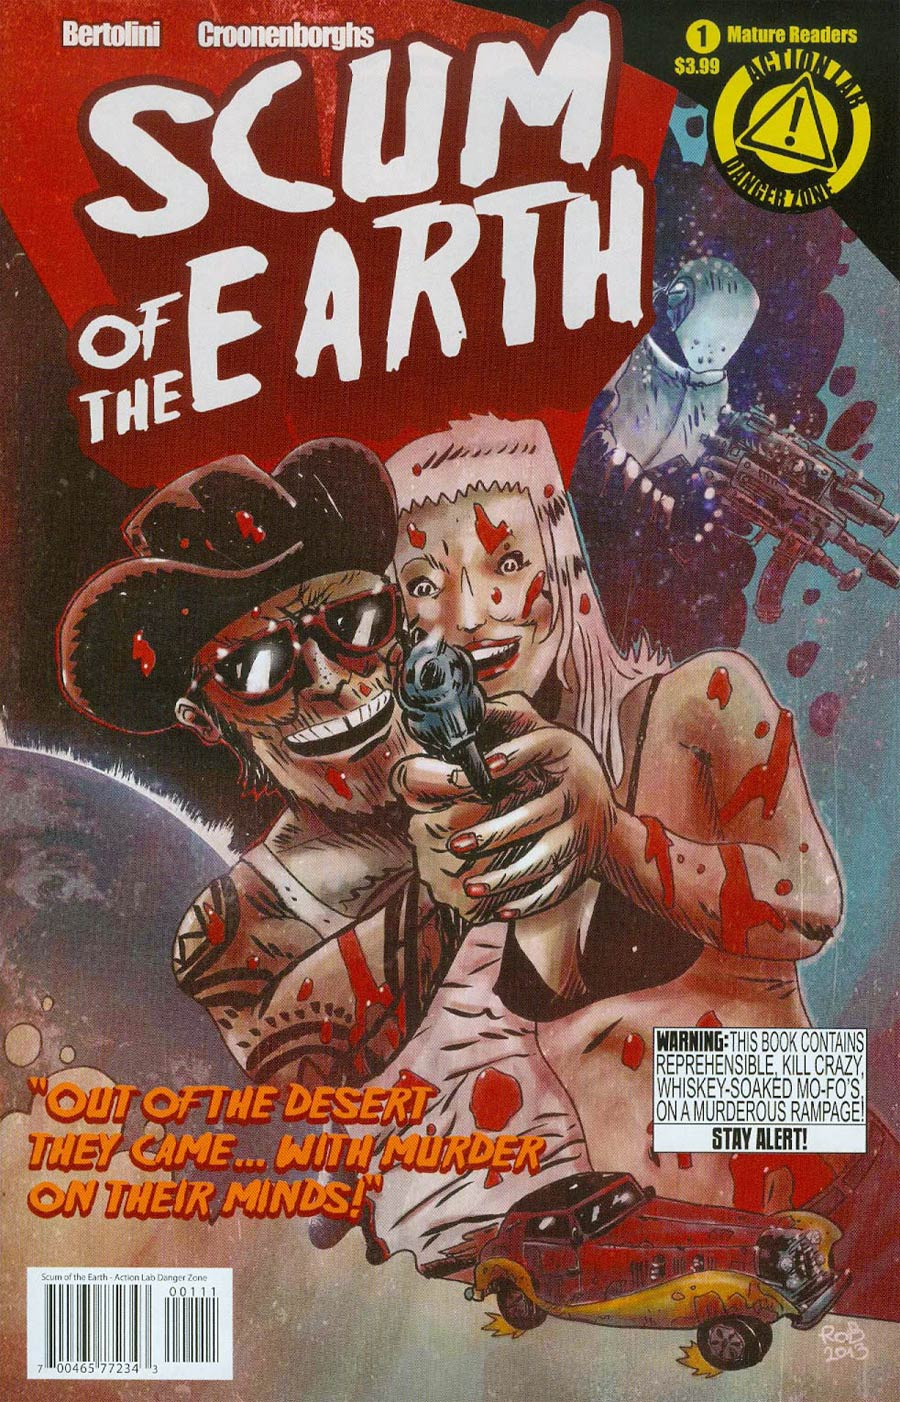 Scum Of The Earth #1 Cover A Regular Rob Croonenborghs Cover